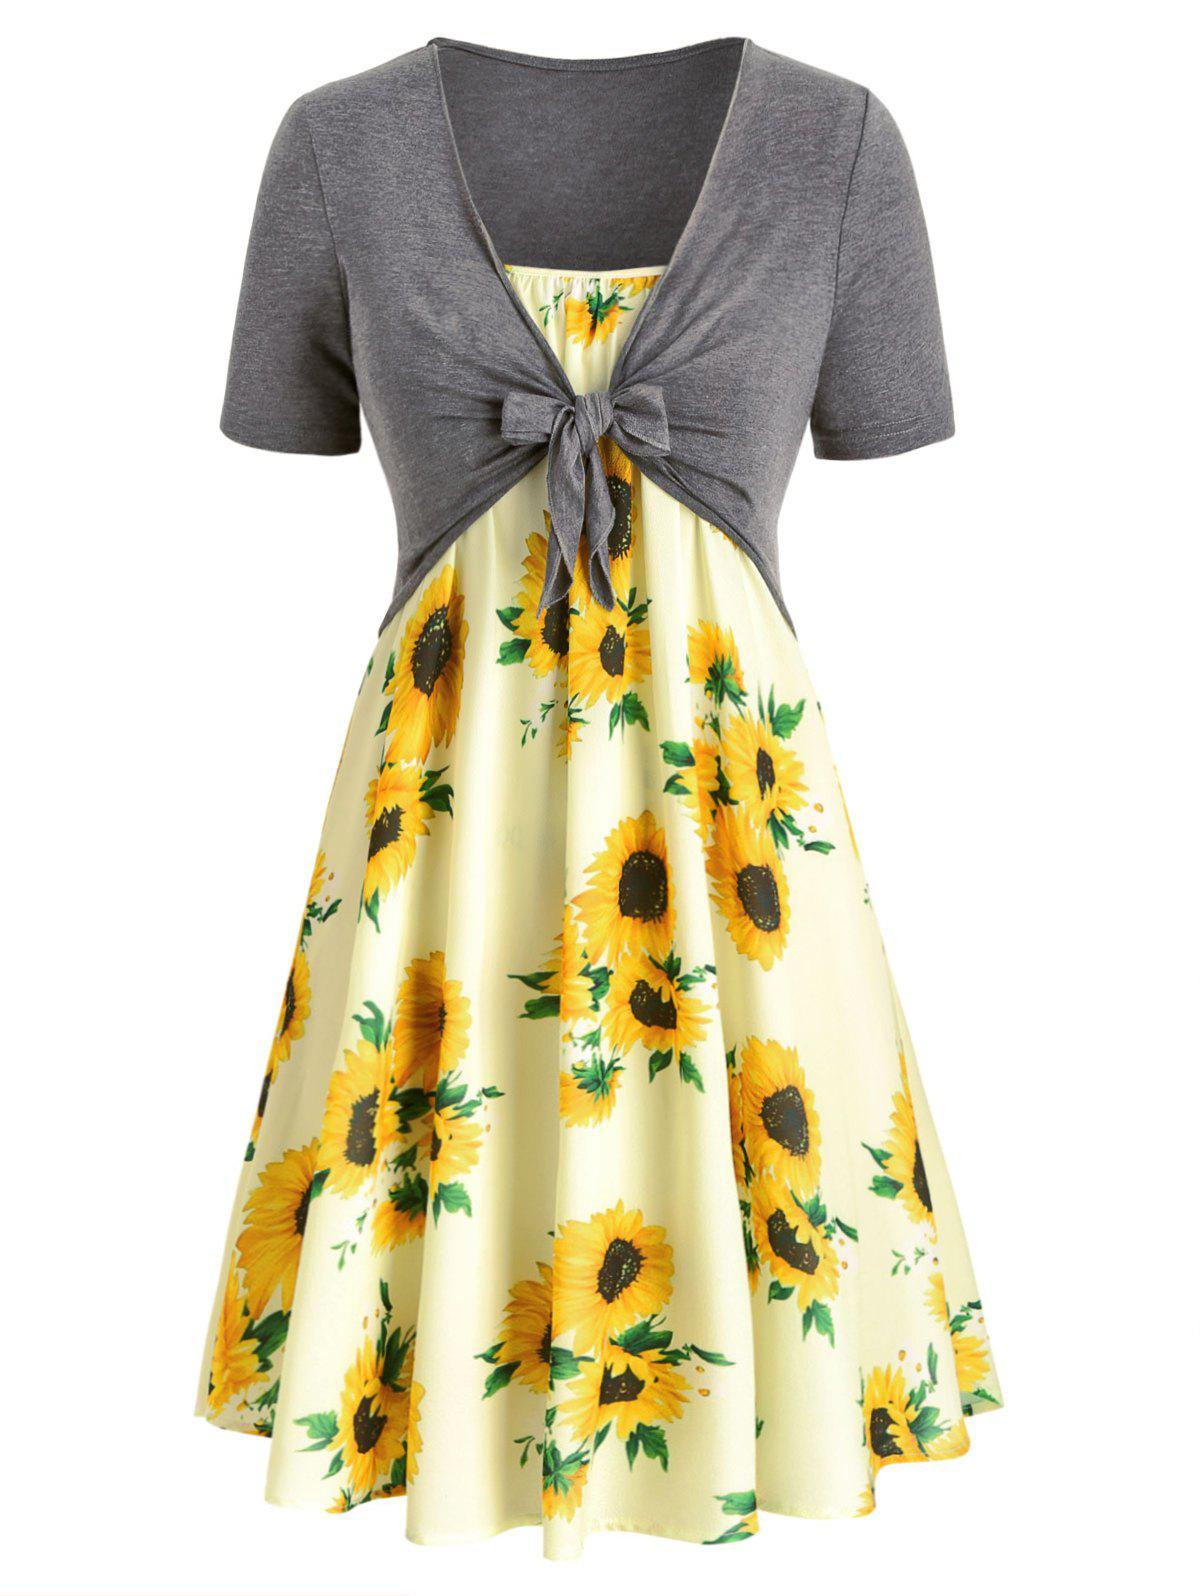 Plus Size Sunflower Print Dress With Front Knot Top - multicolor 1X